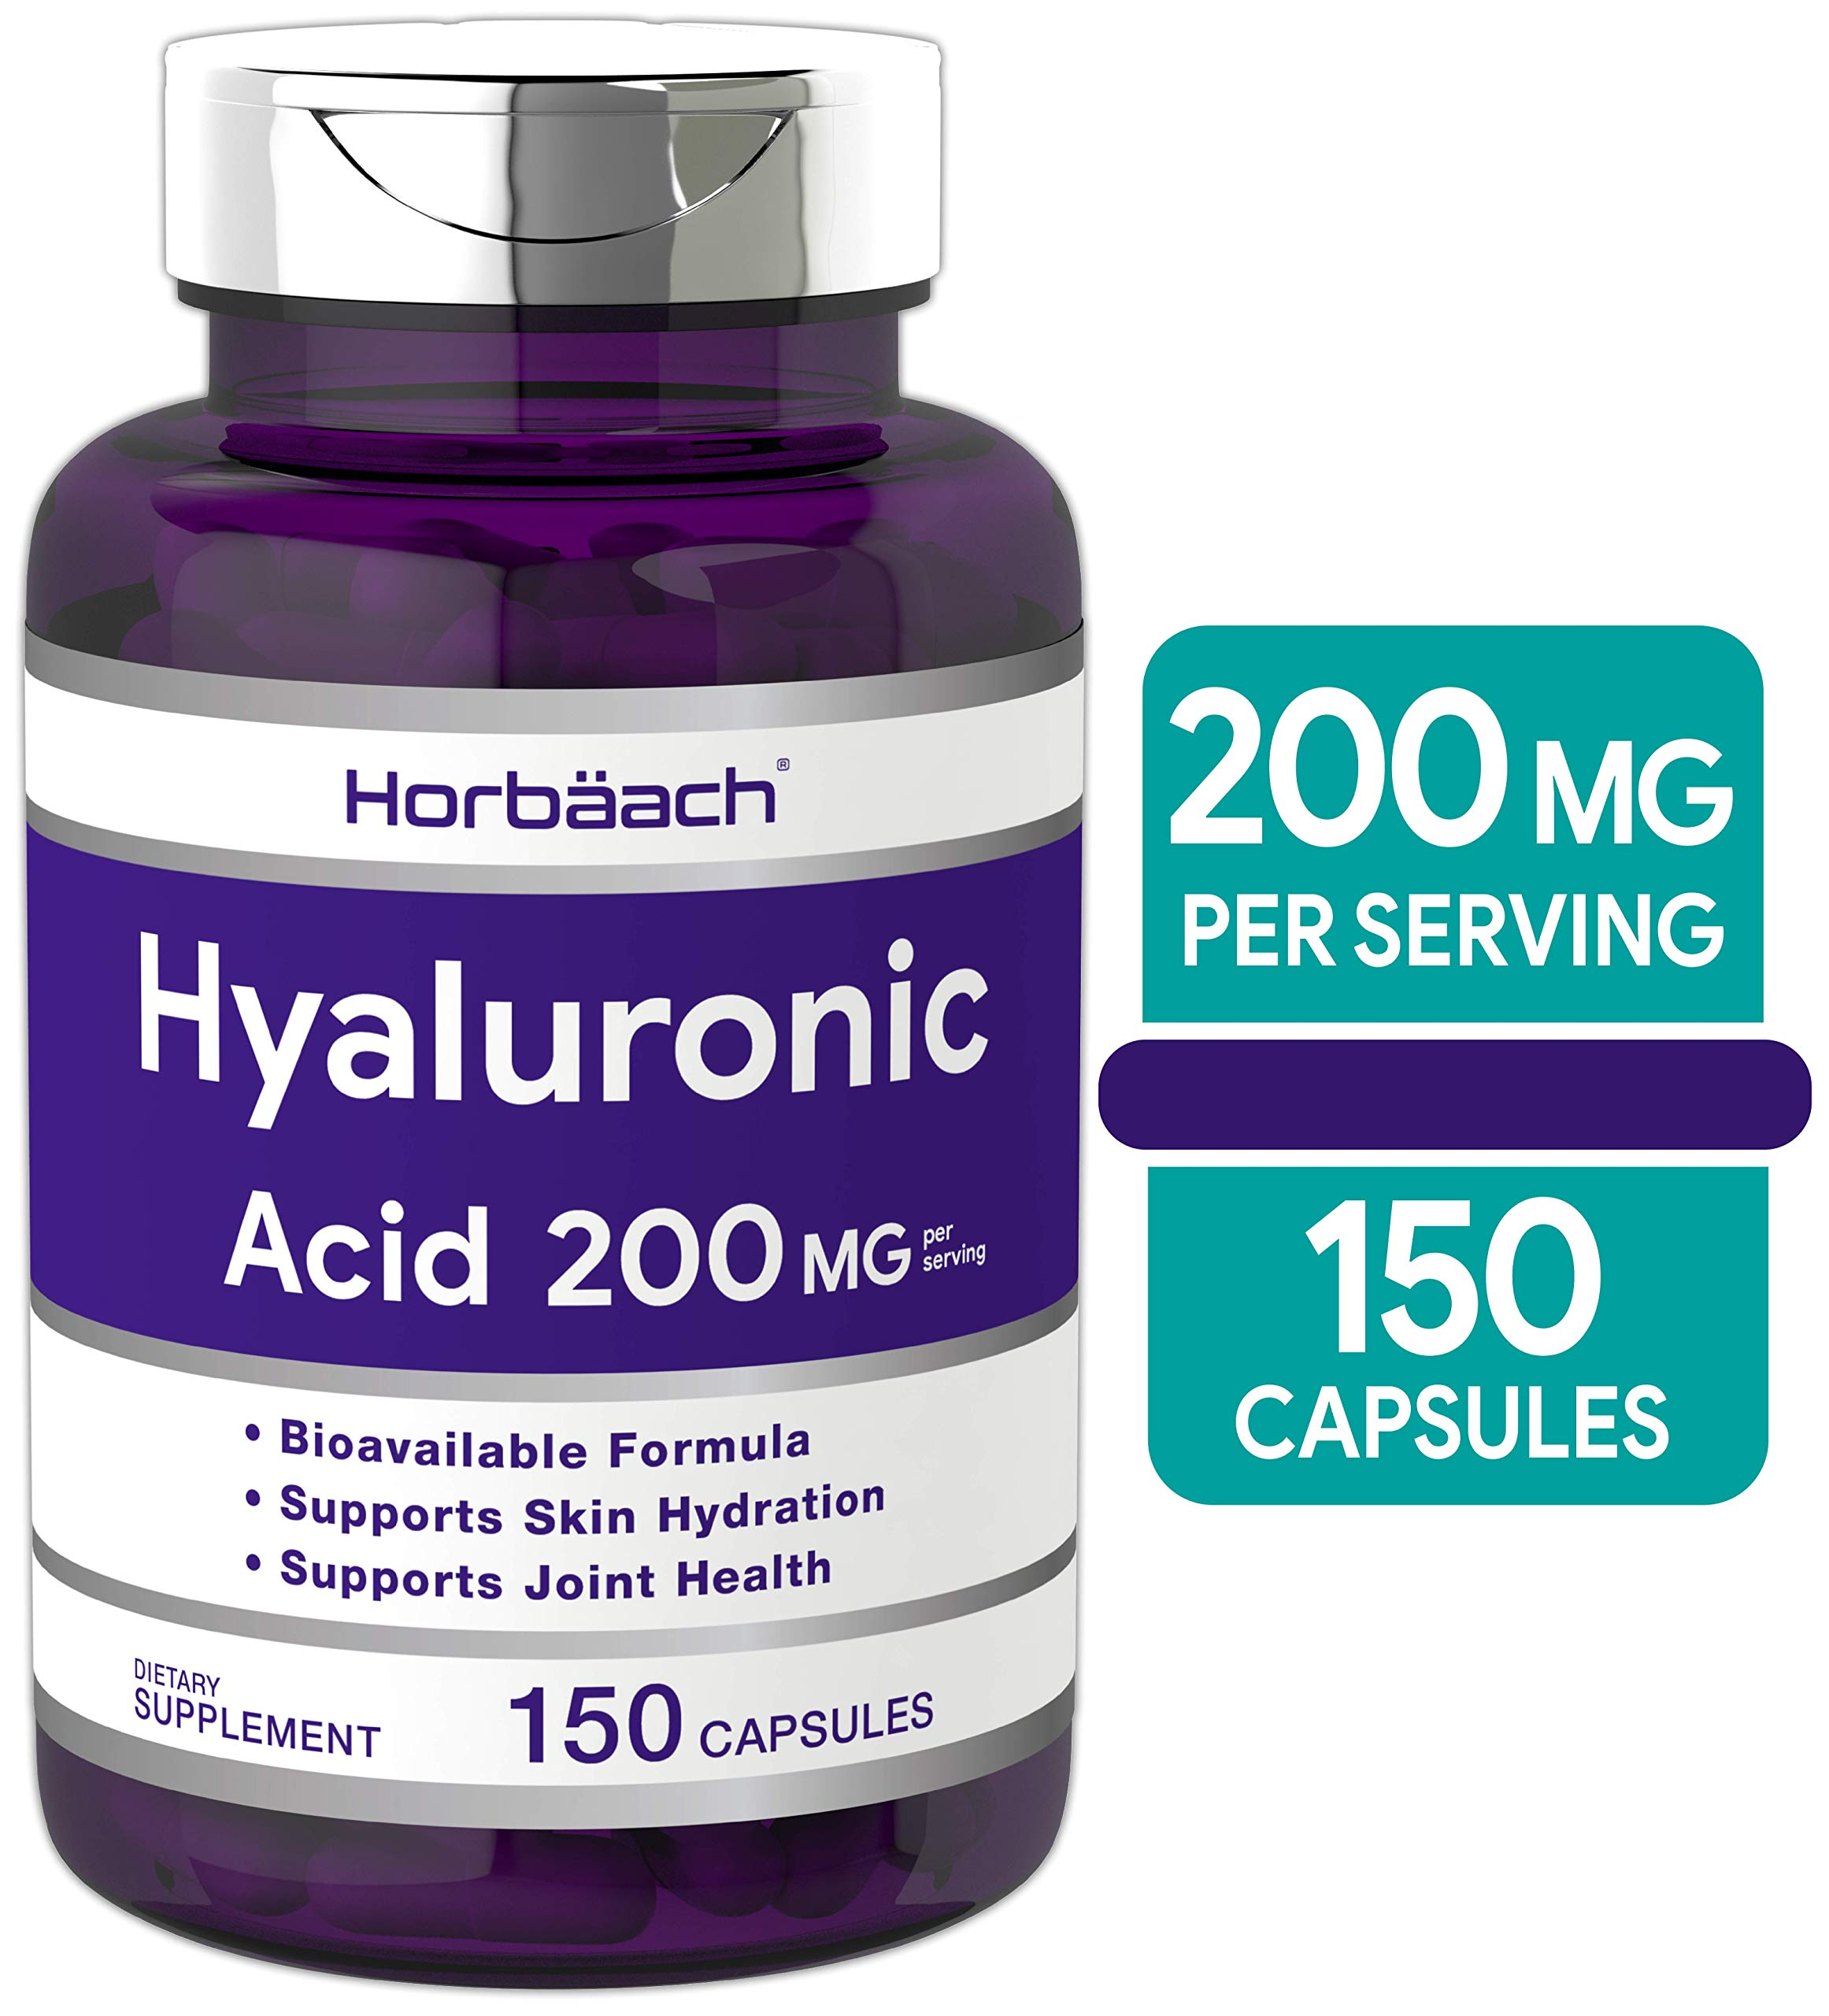 Horbaach Hyaluronic Acid 200 mg 150 Capsules | Supports Joint and Skin Hydration | Non-GMO & Gluten Free Supplement by Horbäach